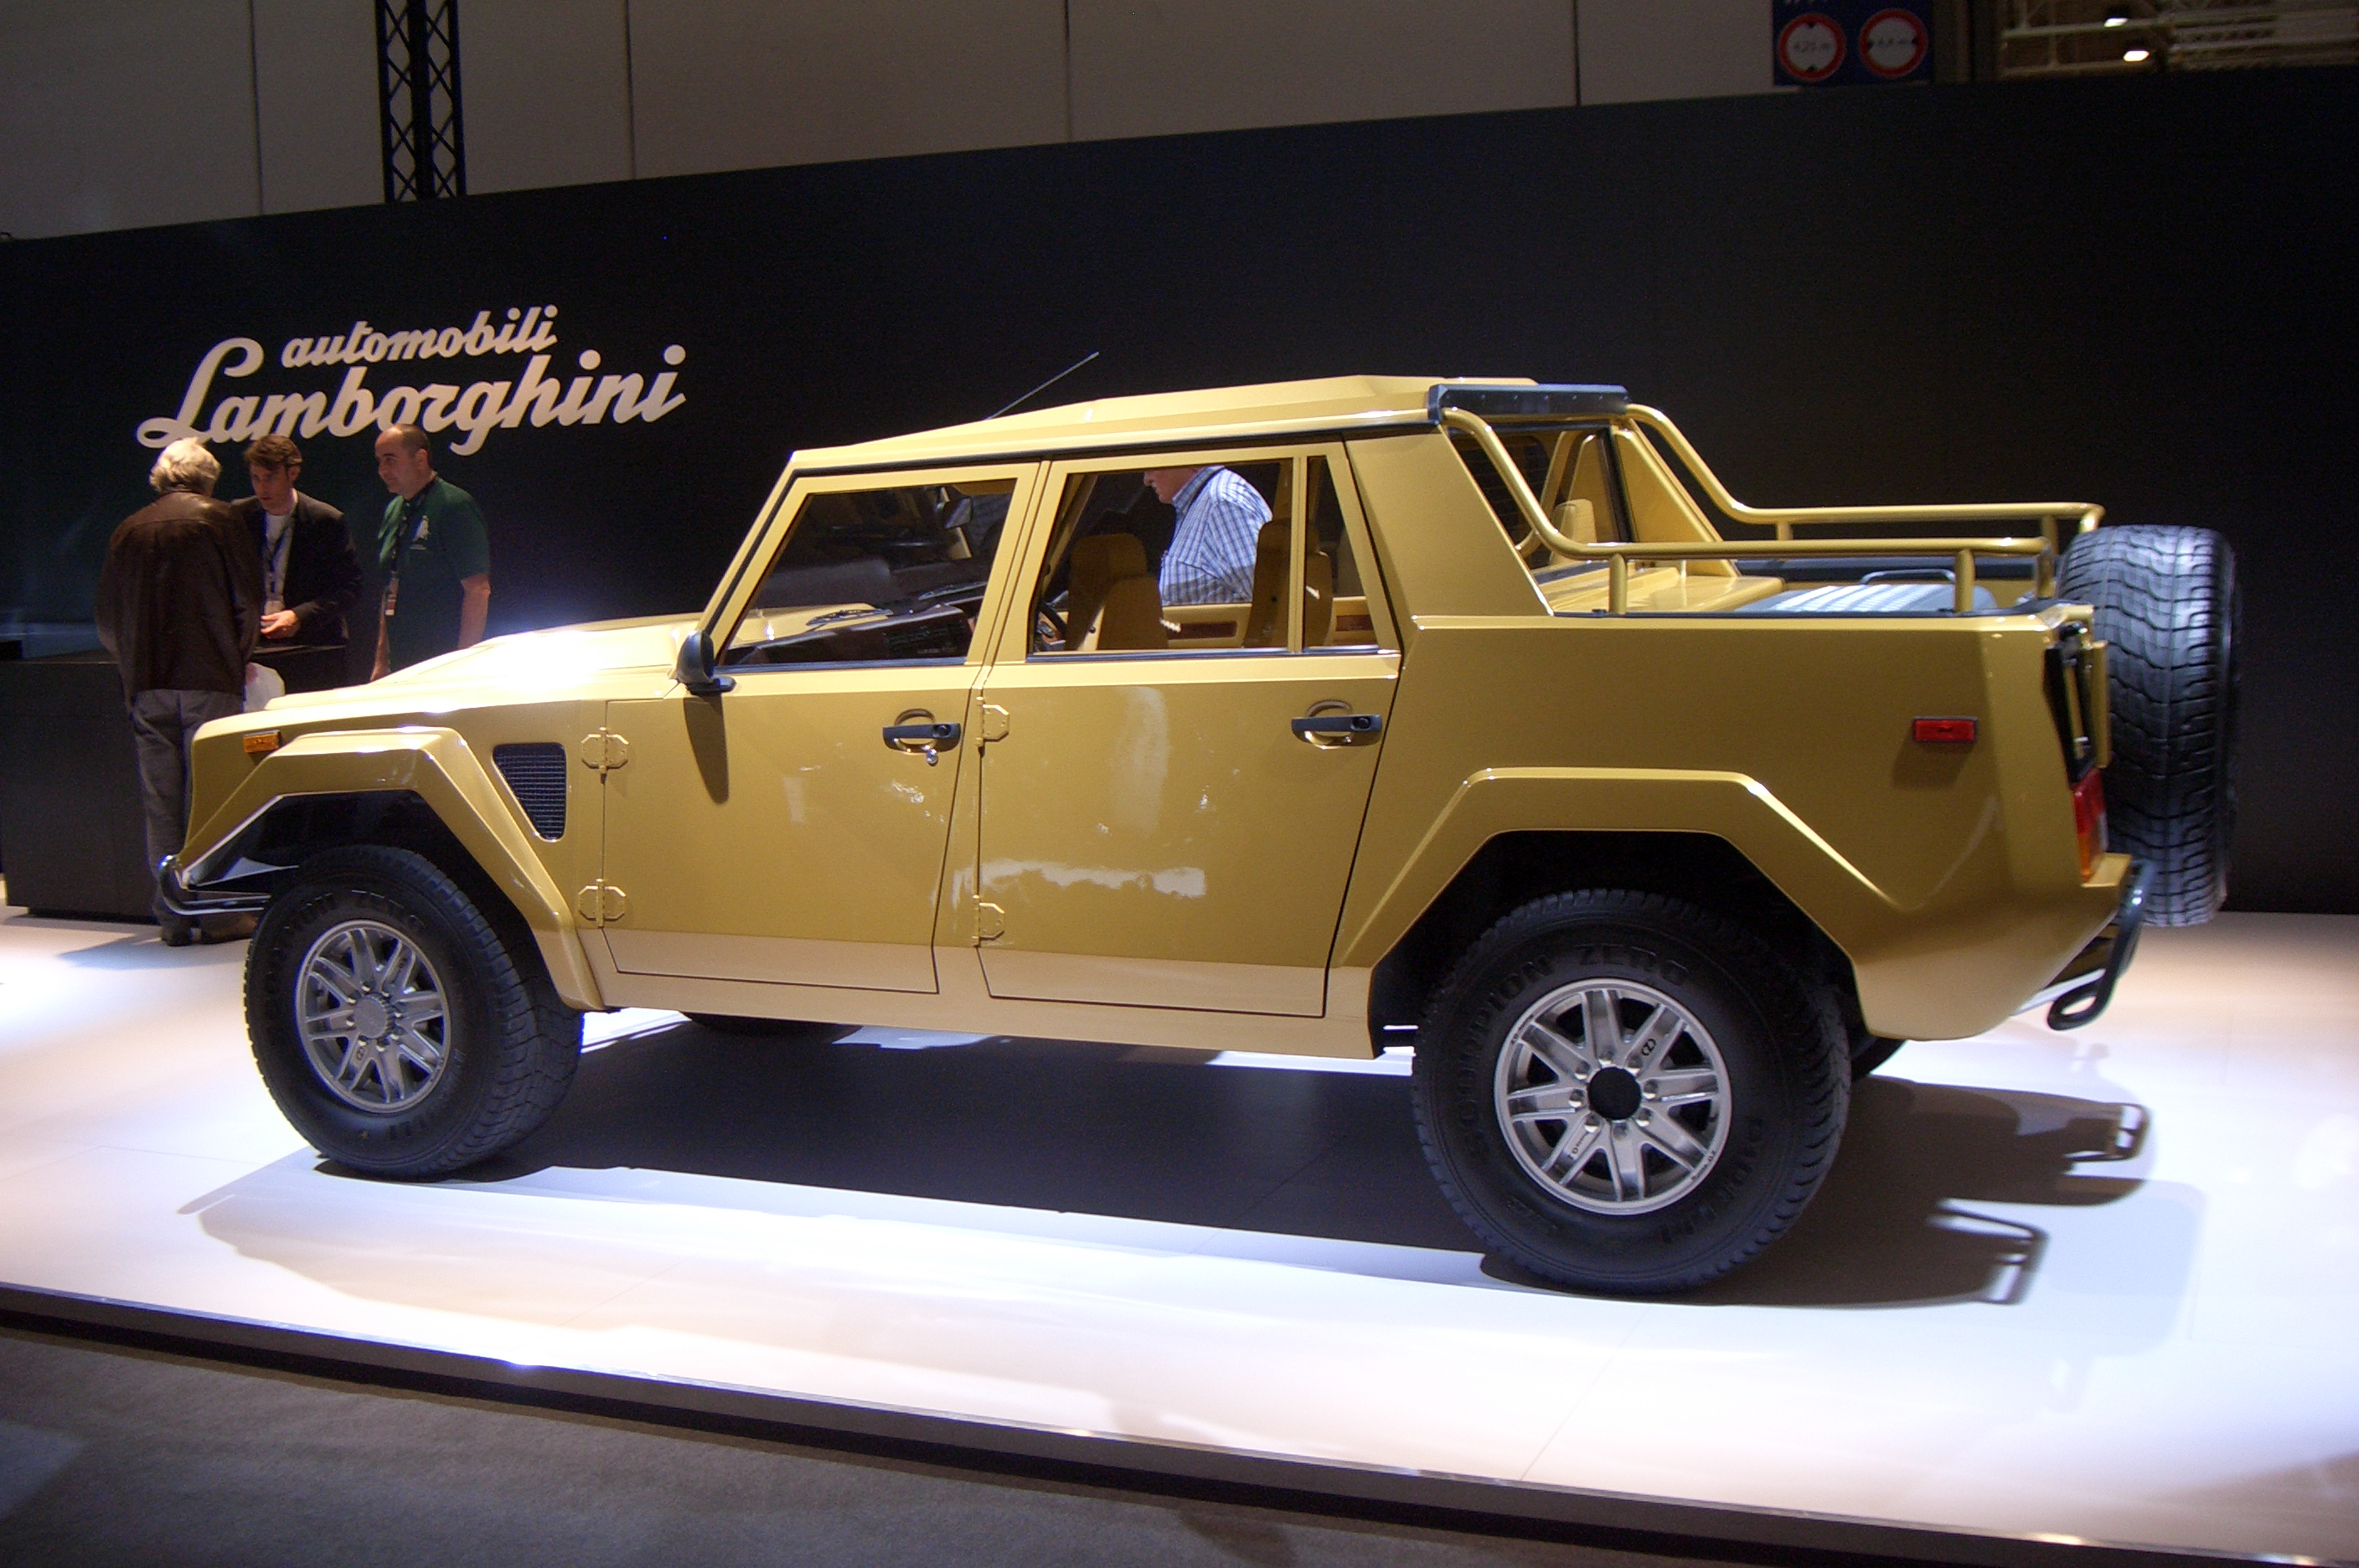 https://upload.wikimedia.org/wikipedia/commons/9/94/Lamborghini_LM002_Gen1_1986-1992_sideleft_2012-03-22_A.jpg